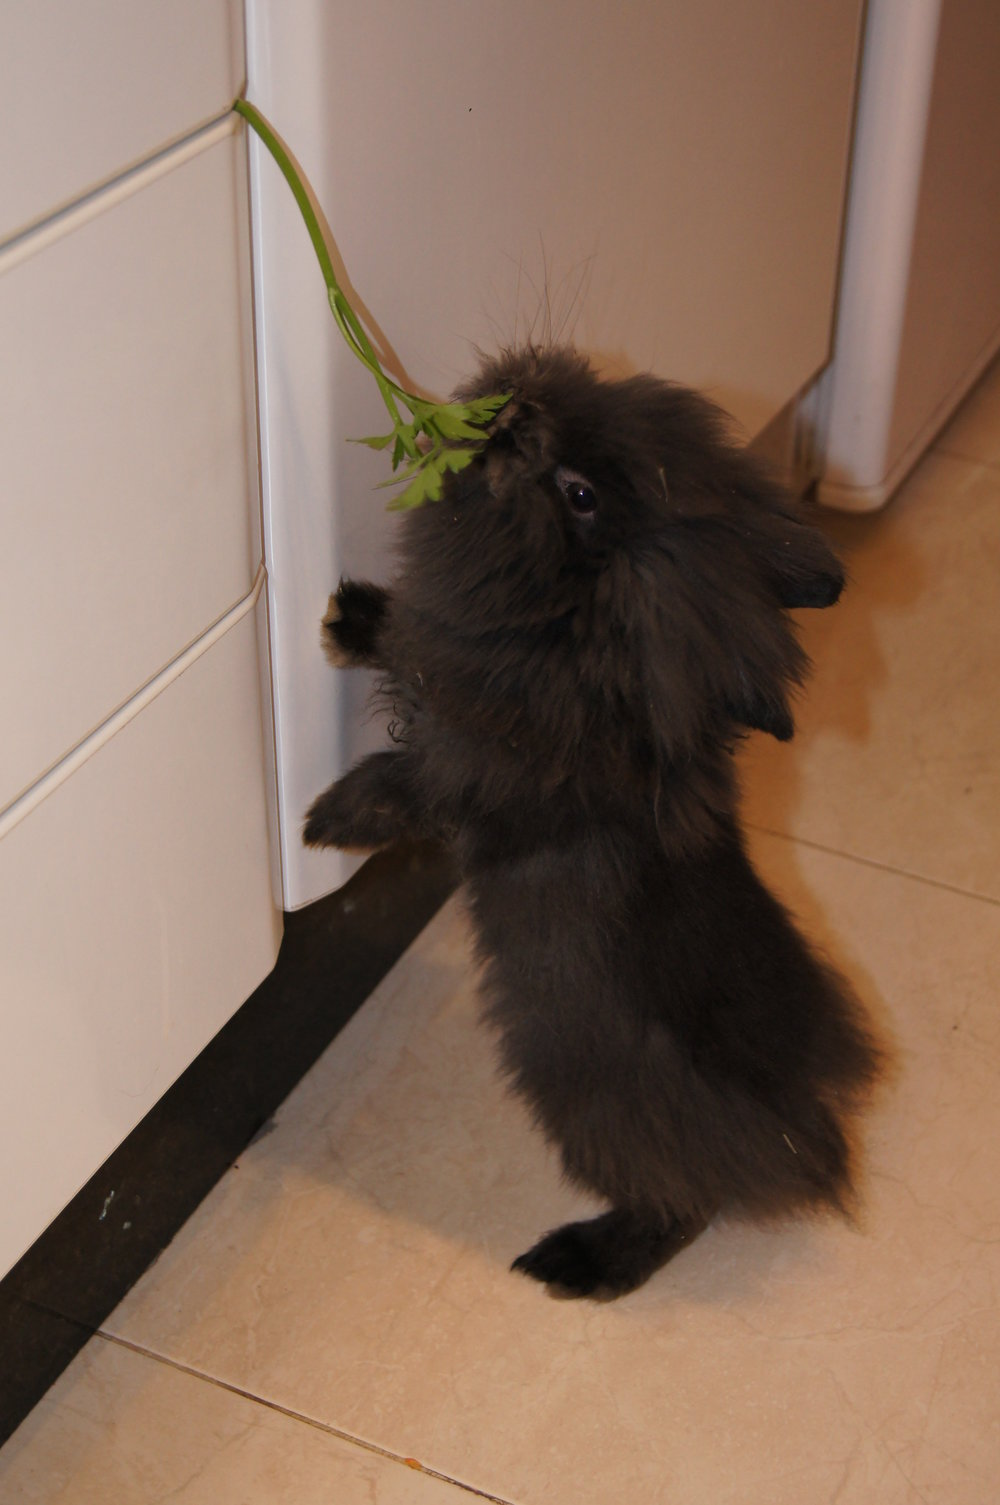 Some Parsley Got Stuck? I'll Help! I'll Help!